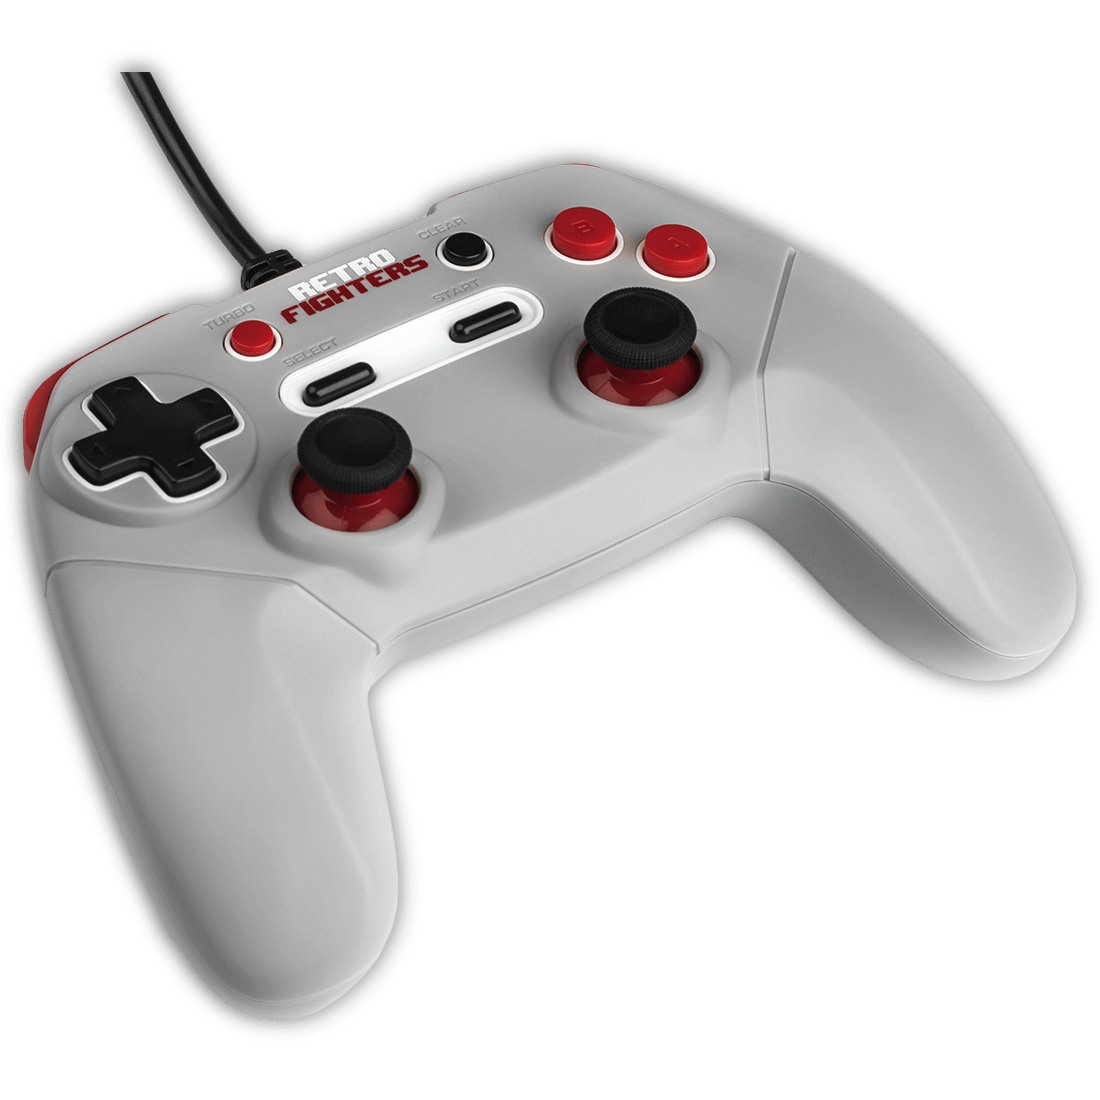 jab-gamepad-persp-left-1100x1100.png